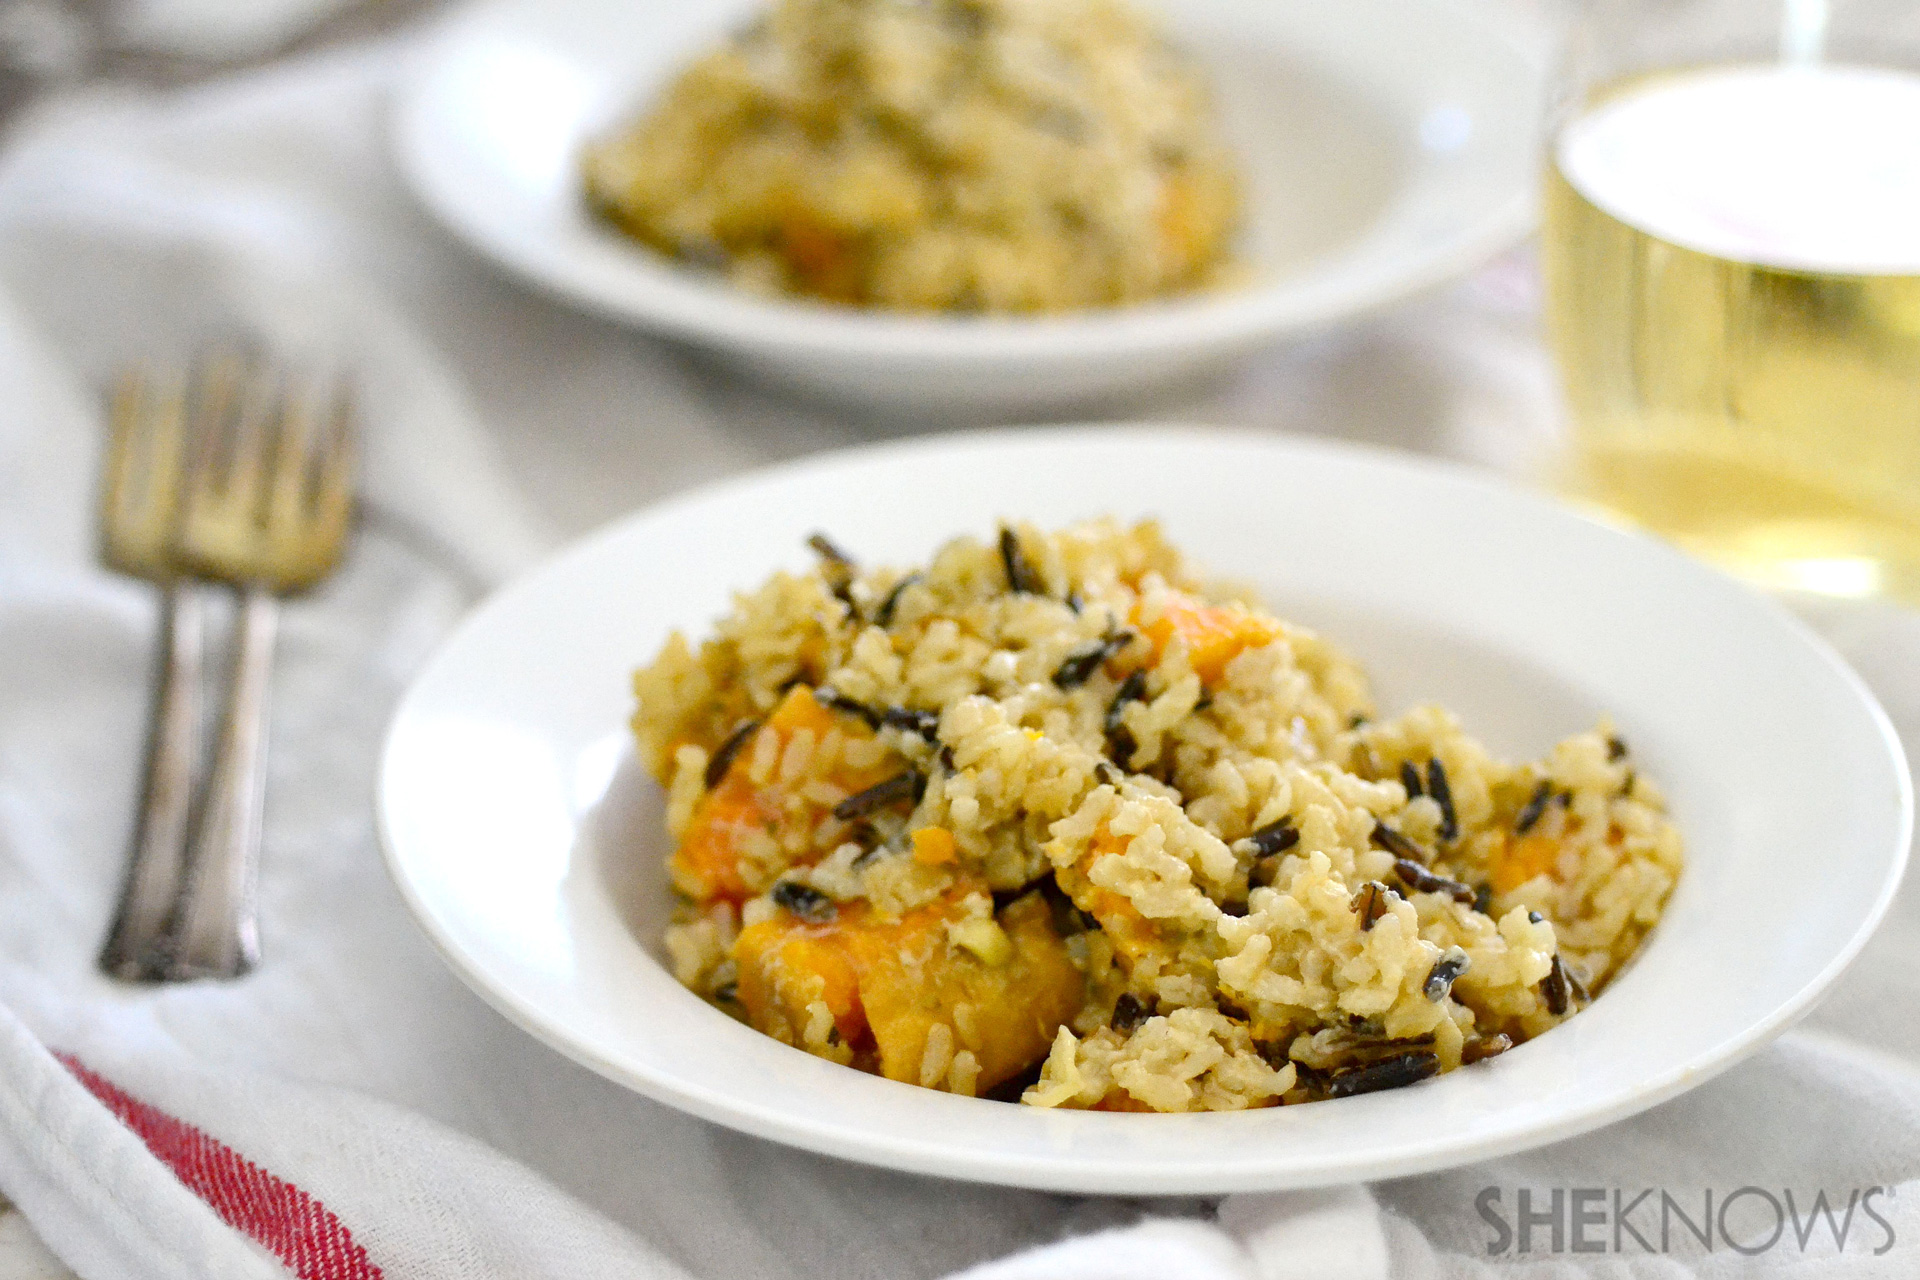 Creamy rice pilaf with coconut milk and sweet potatoes